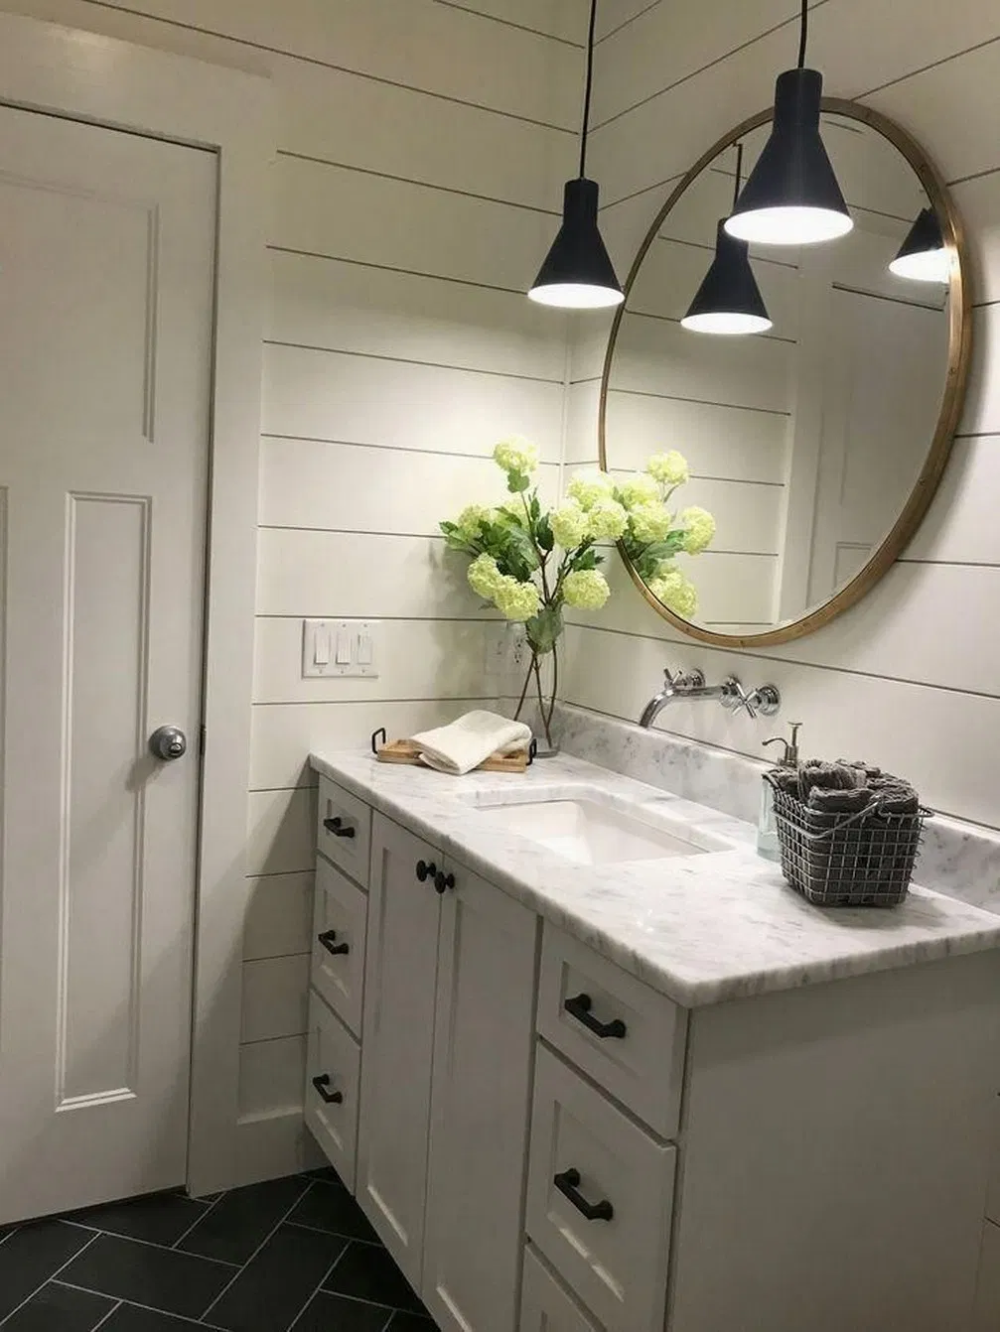 38 beautiful farmhouse bathroom design and decor ideas 12 on beautiful farmhouse bathroom shower decor ideas and remodel an extraordinary design id=50280